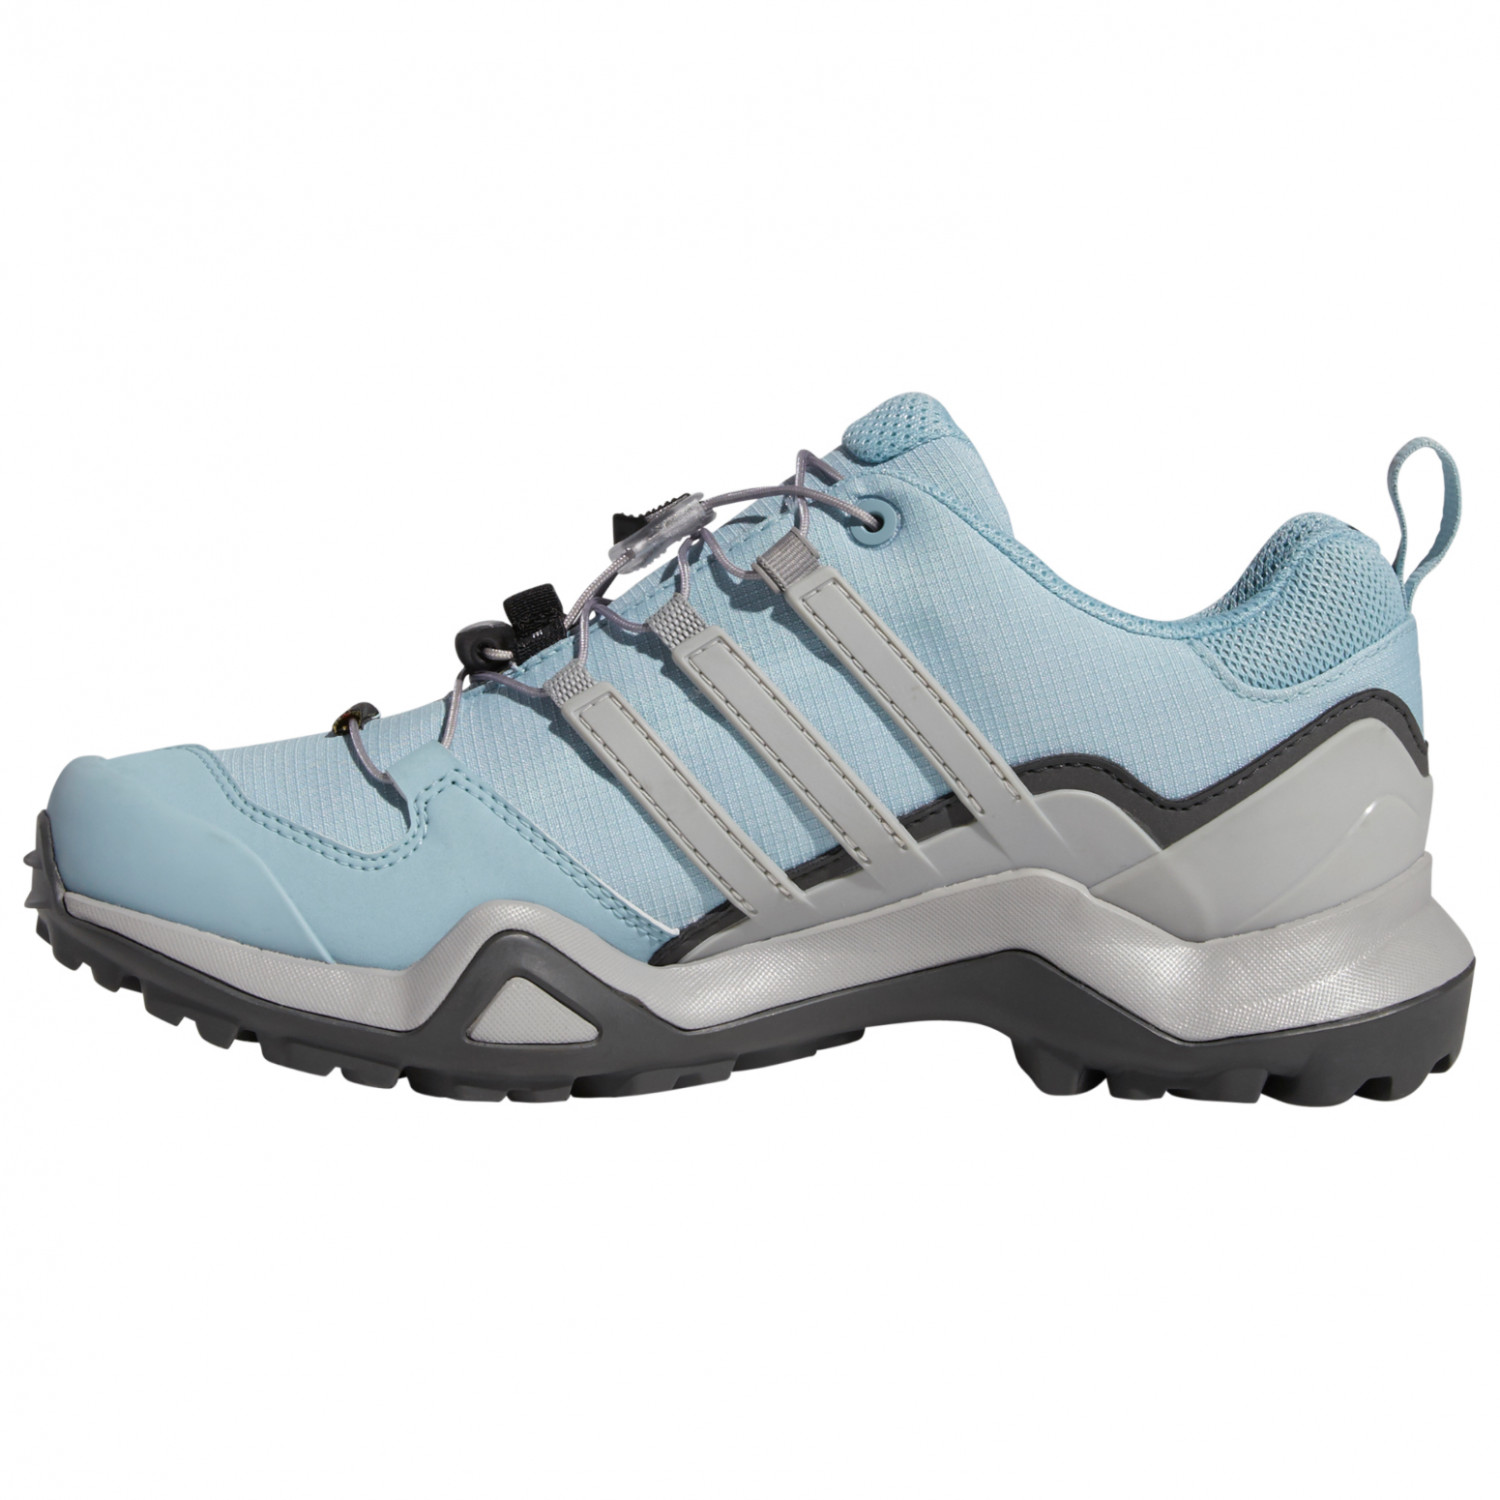 adidas - Women's Terrex Swift R2 GTX - Multisportschuhe - Tech Ink / Carbon  / Glow Blue | 4 (UK)